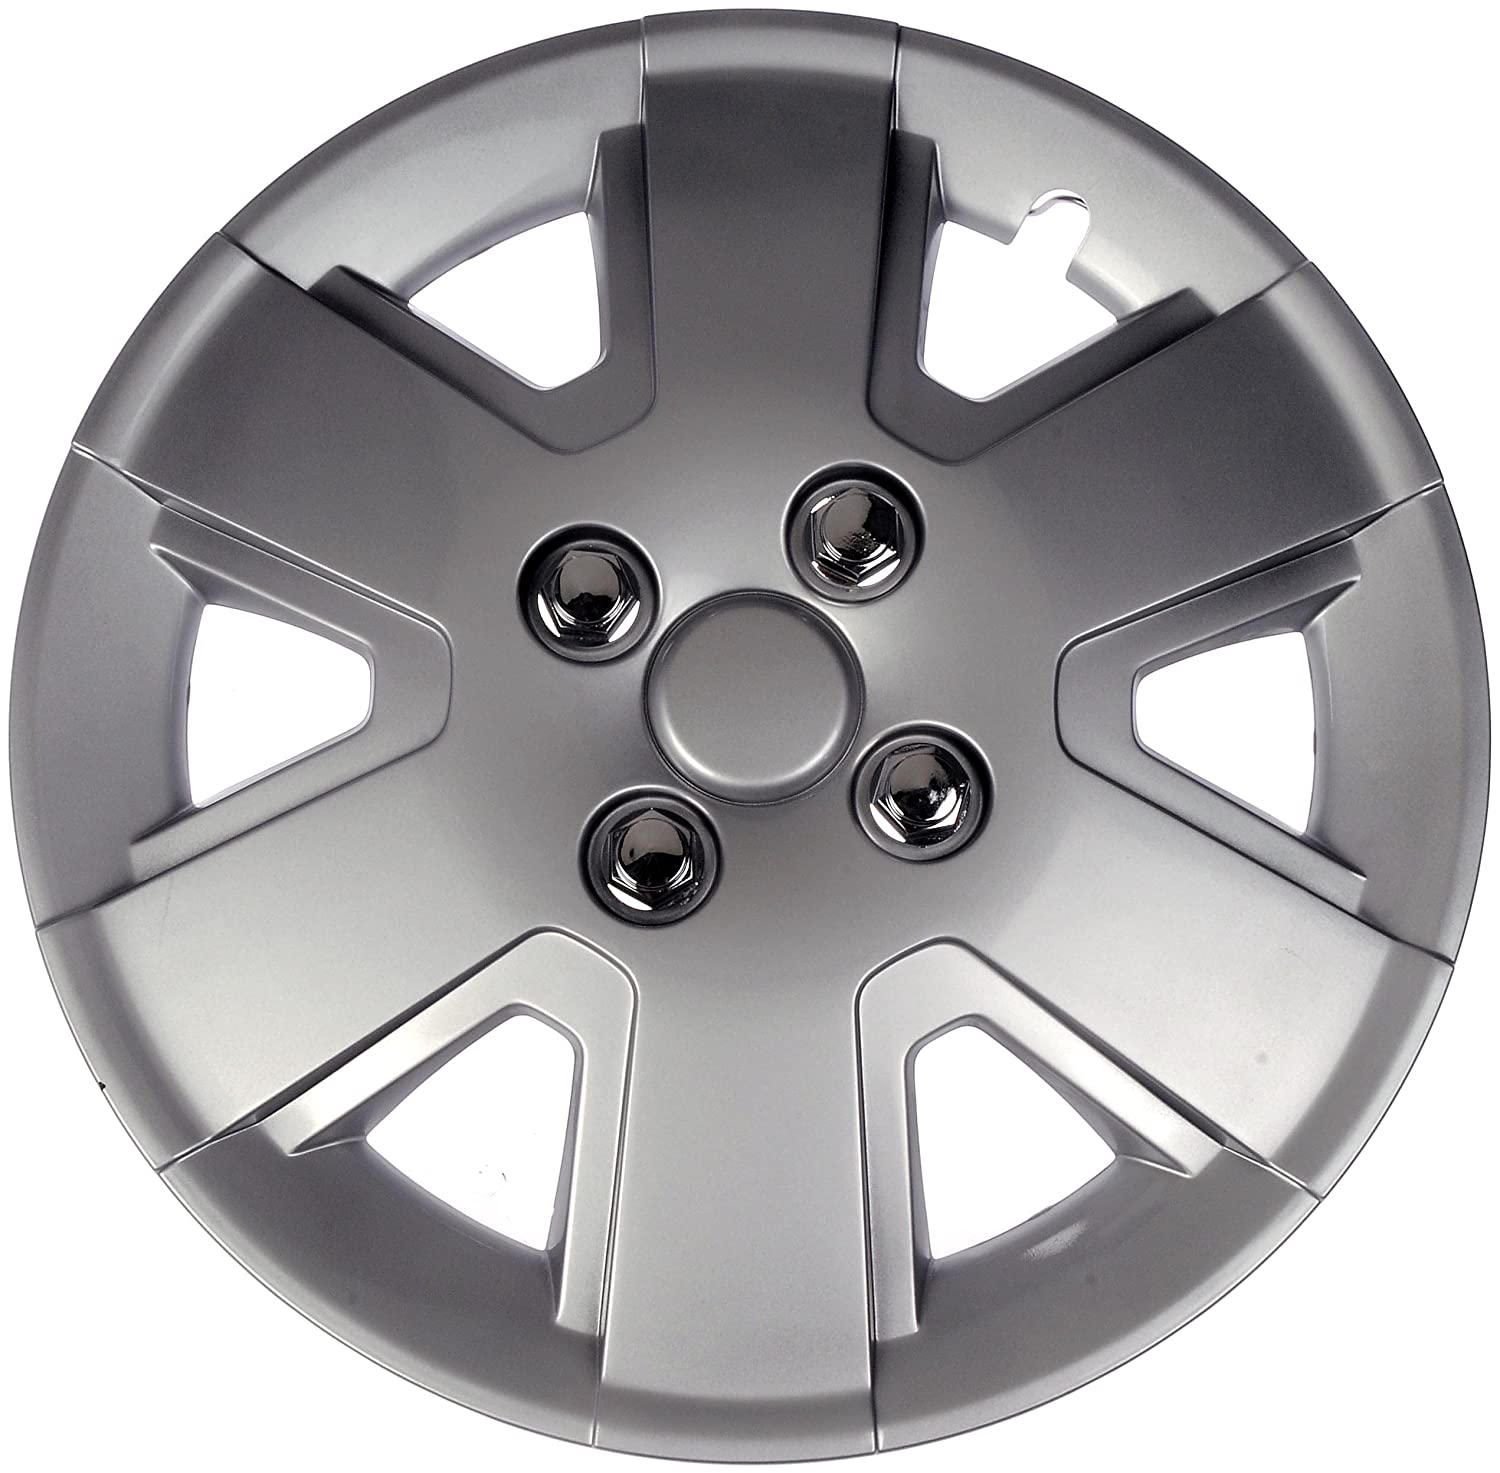 Dorman 910-106 Ford Focus 15 inch Wheel Cover Hub Cap